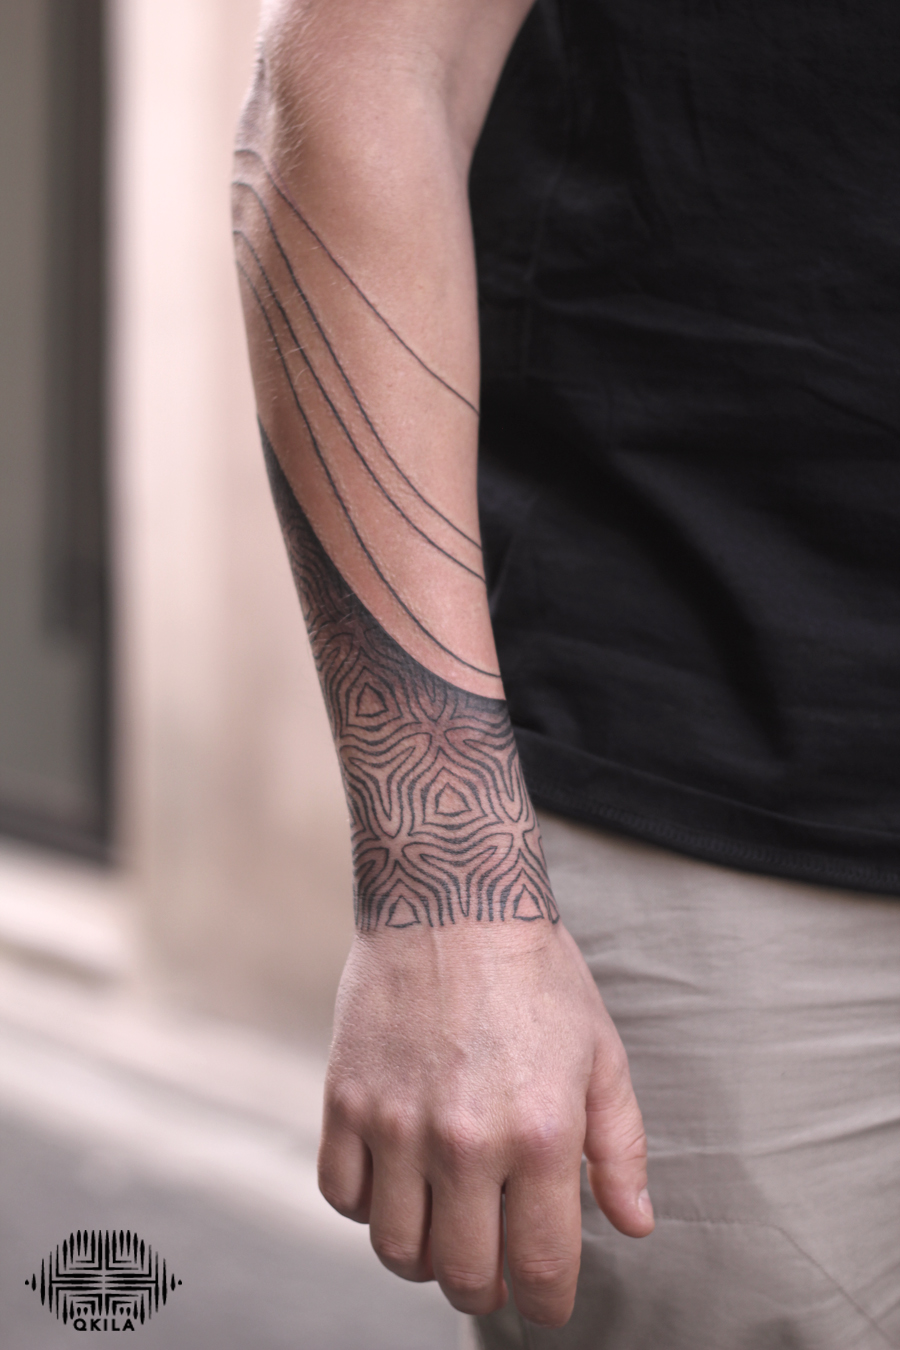 gabe,noir tattoo,black on black,patterns tattoo,op art, sleeves tattoo, dotwork tattoo, qkila,geometric tattoo, ethnique tattoo, les tatoués anonymes, nimes